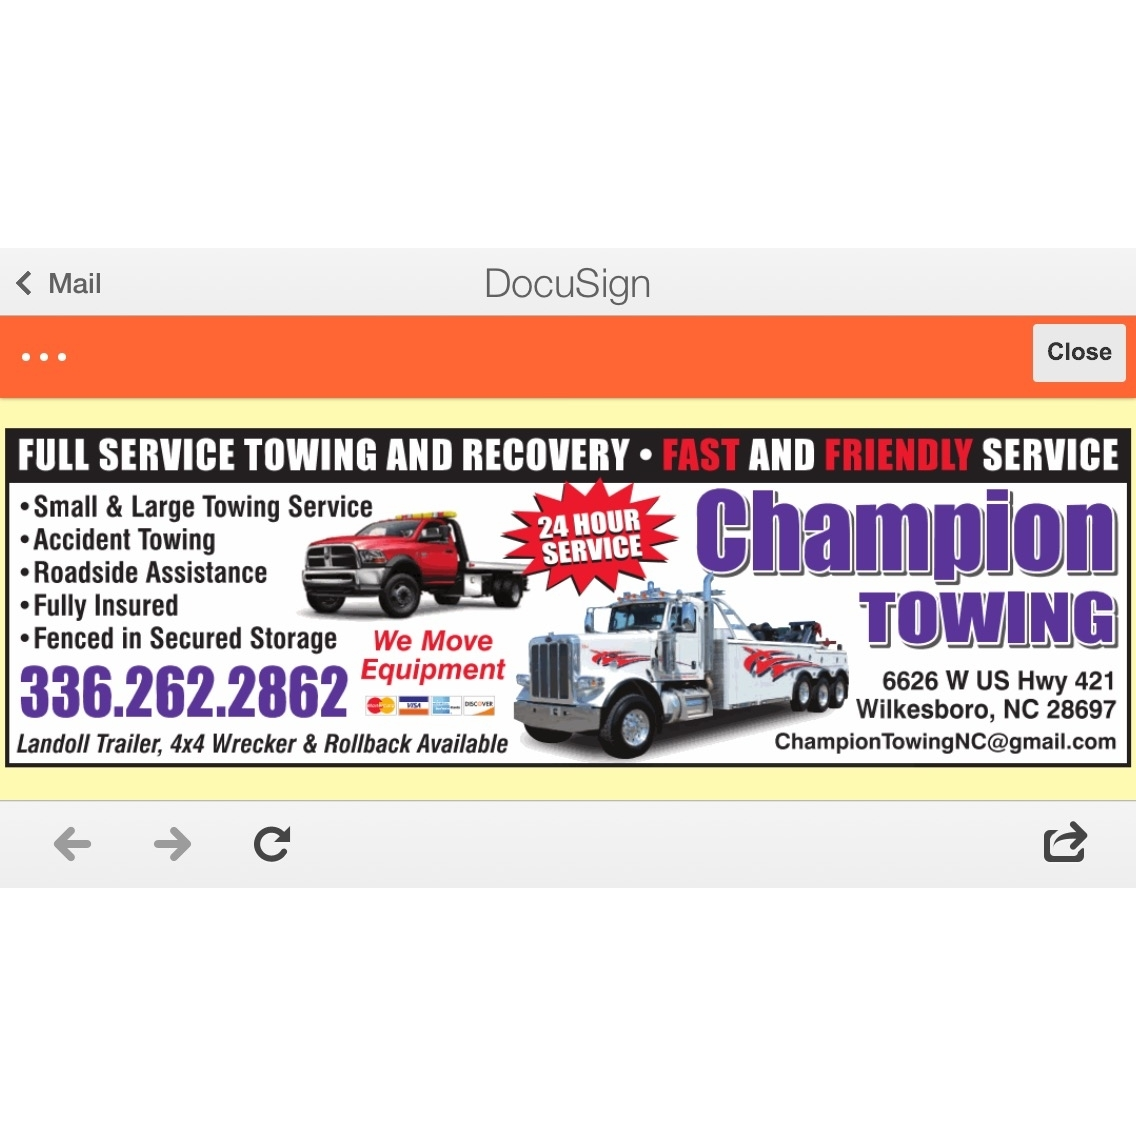 Champion Towing & Recovery - Wilkesboro, NC - Auto Towing & Wrecking